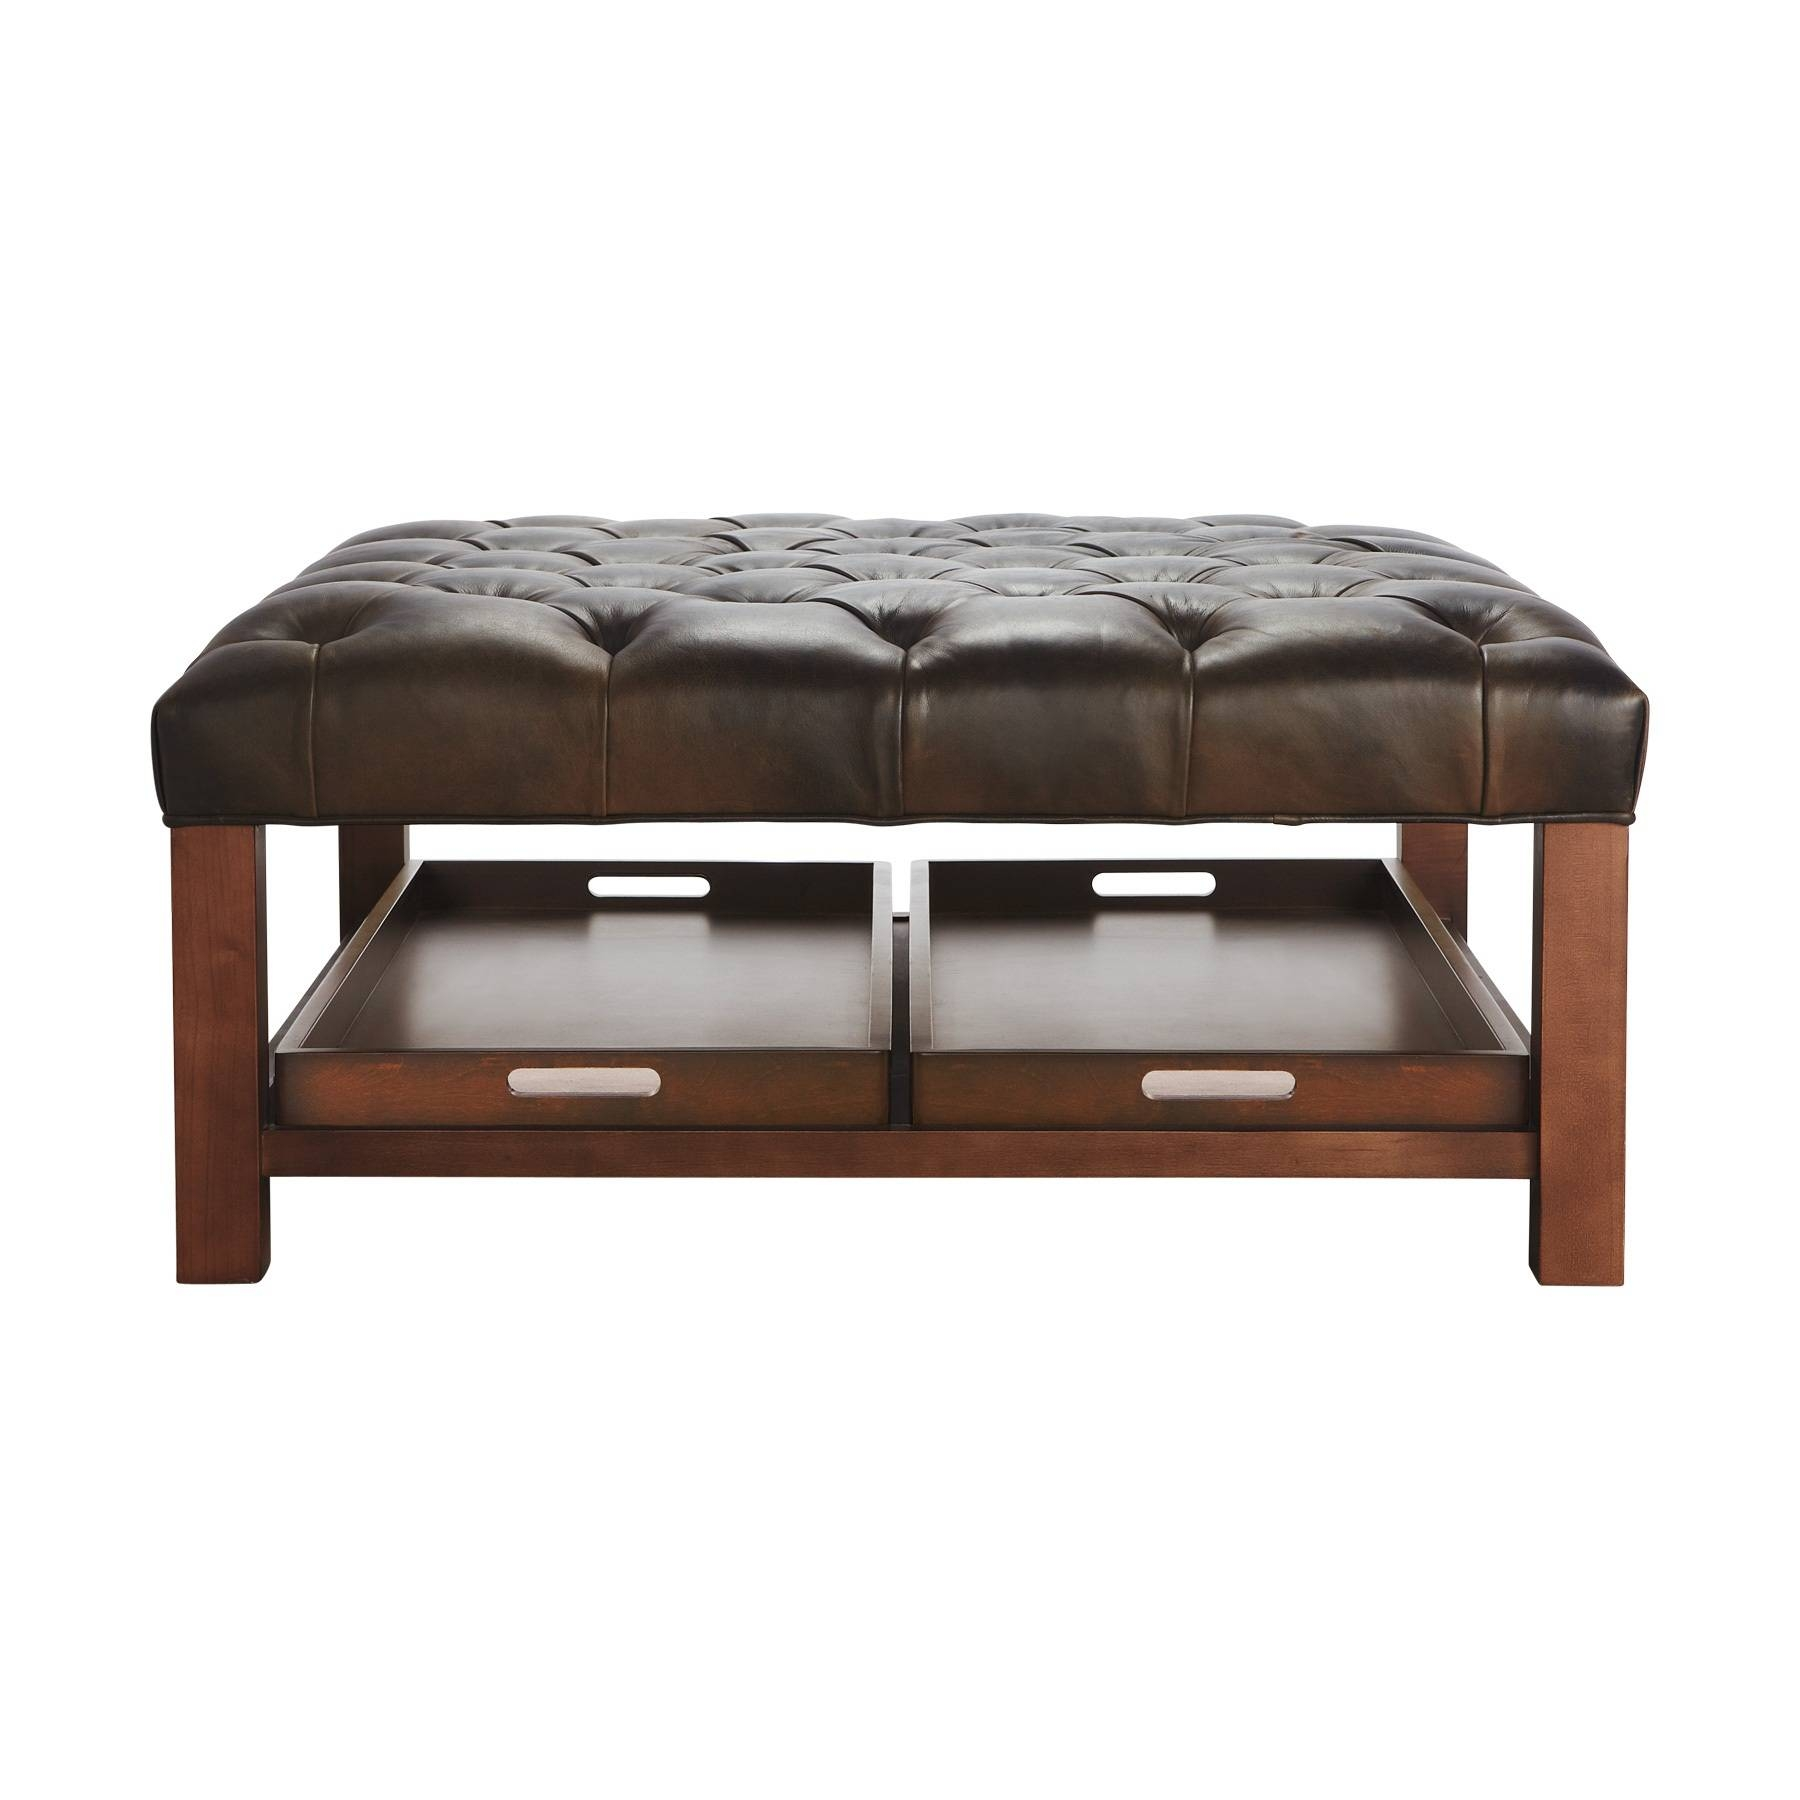 Decoration Ideas Metal Coffee Table – Metal Coffee Table Round In Large Rectangular Coffee Tables (View 11 of 30)